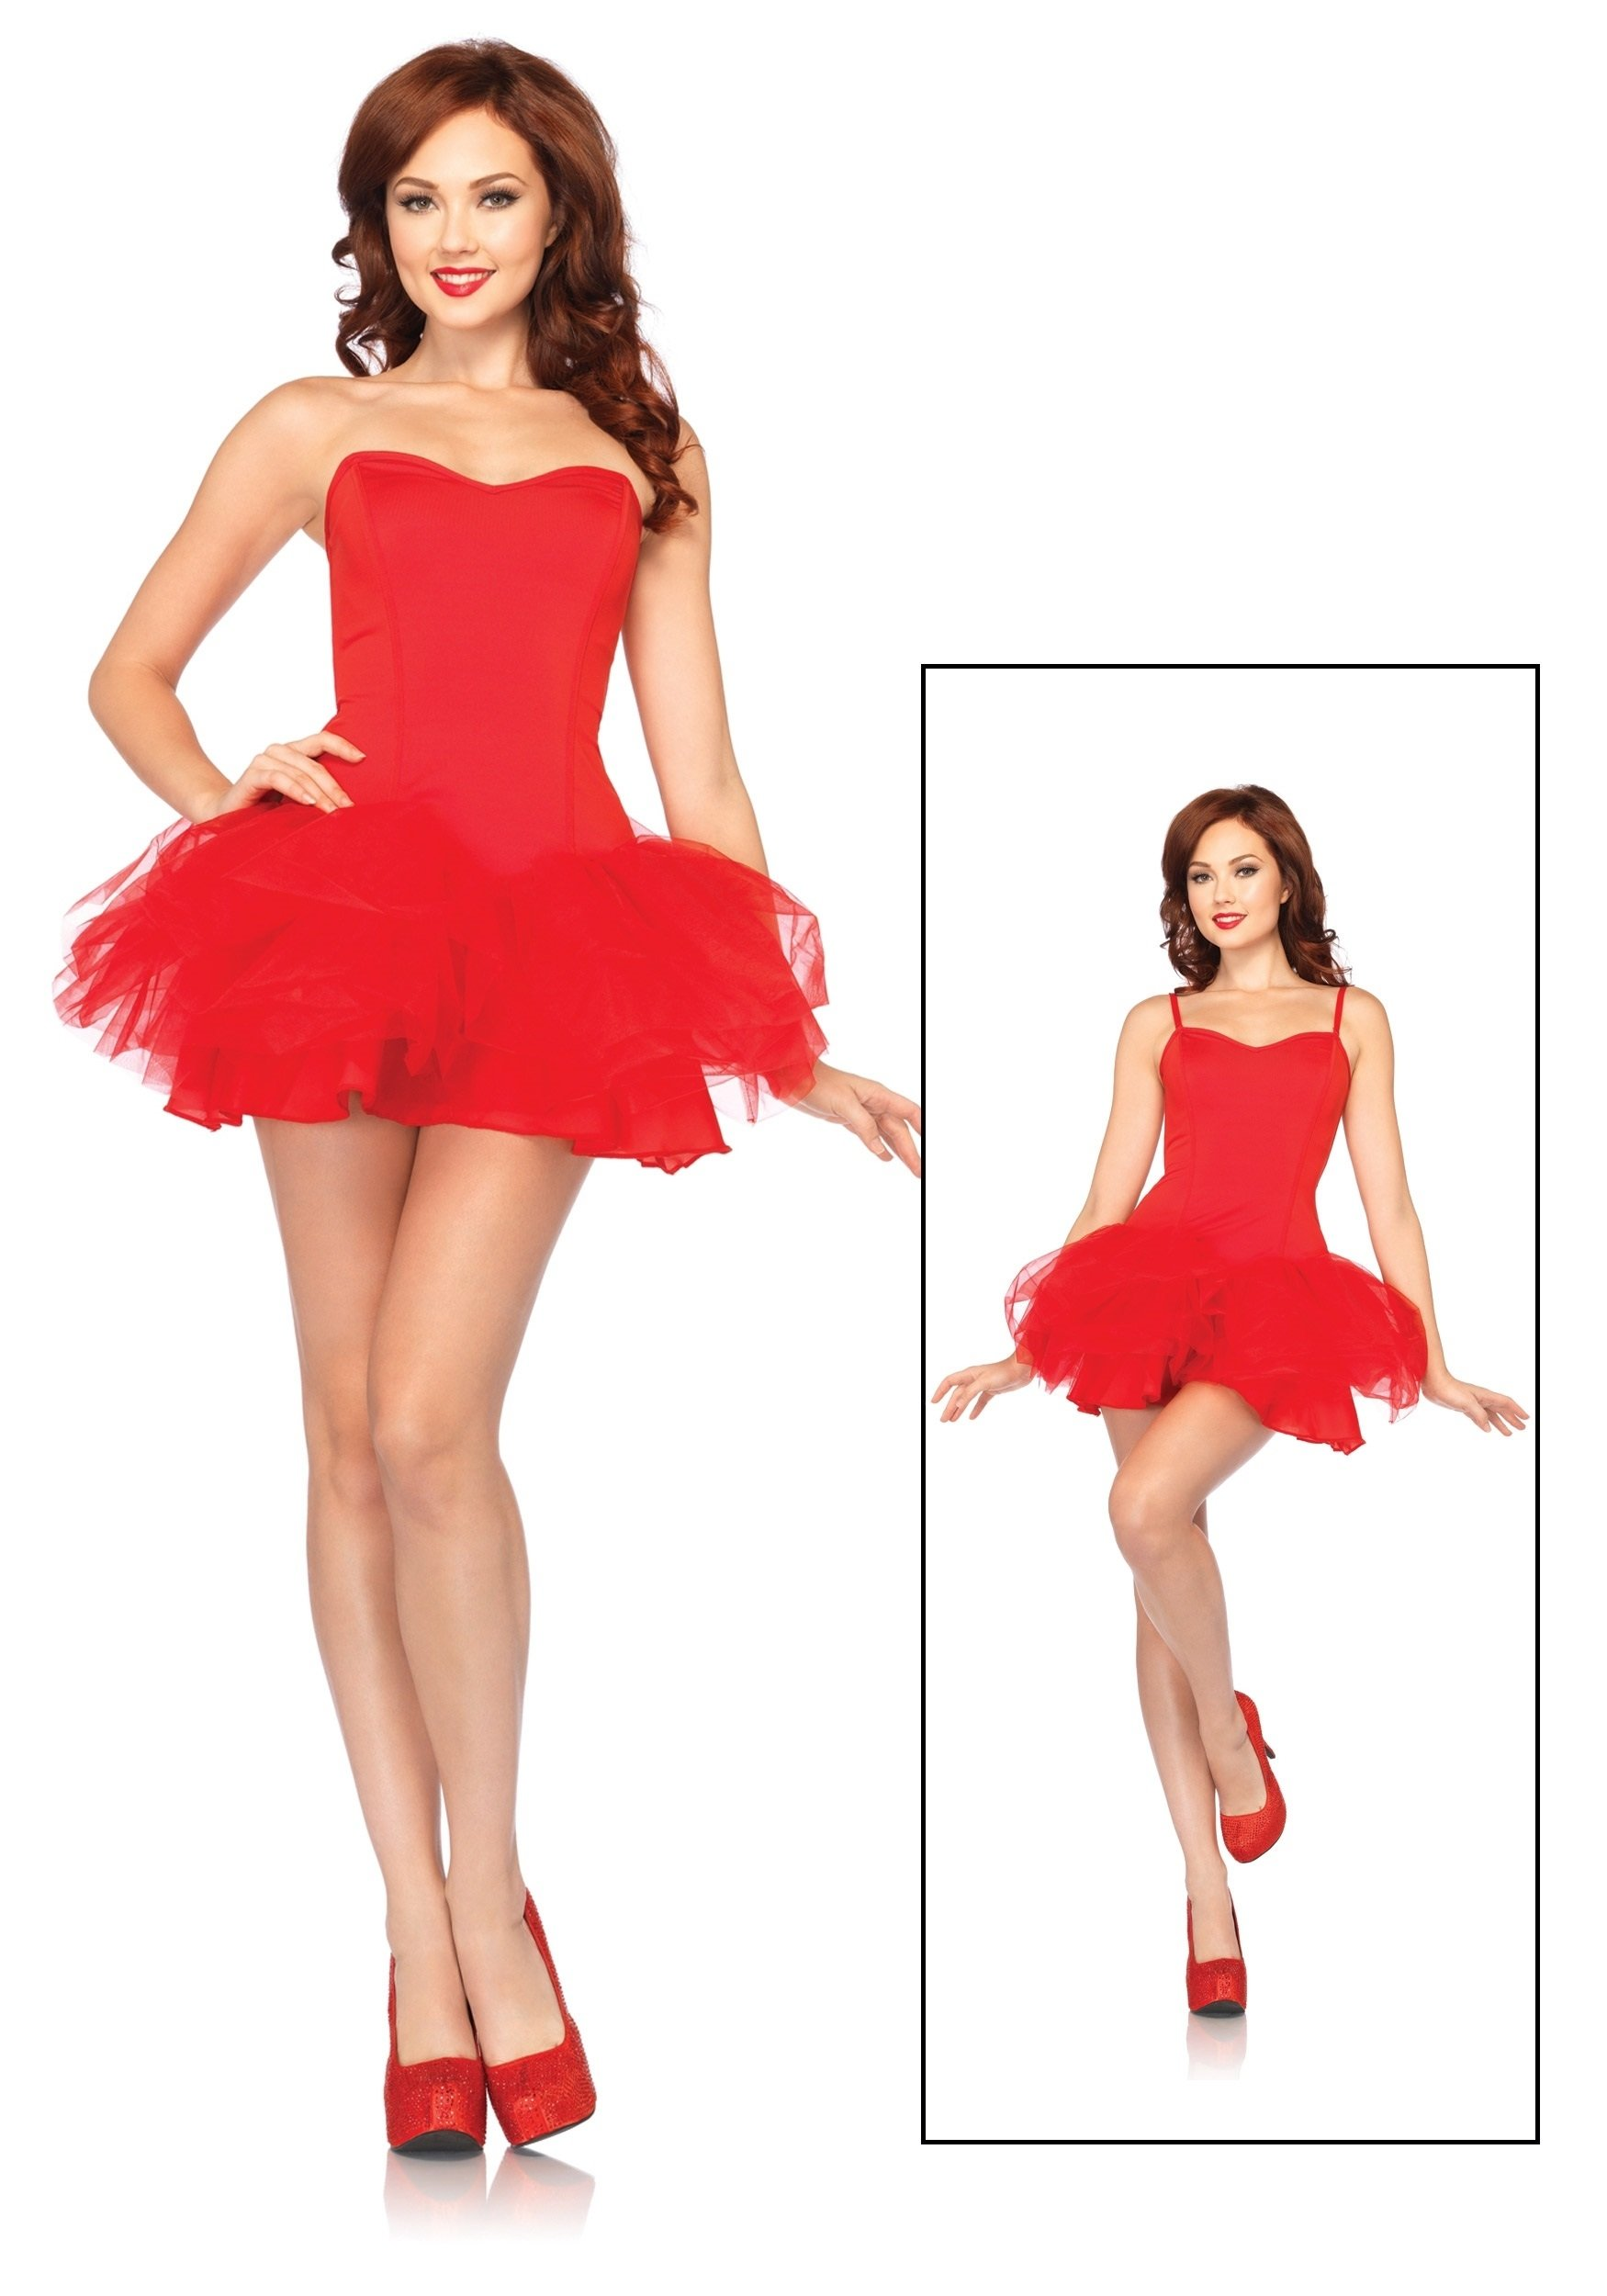 10 Gorgeous Red Dress Halloween Costume Ideas red tutu dress halloween costume ideas 2016